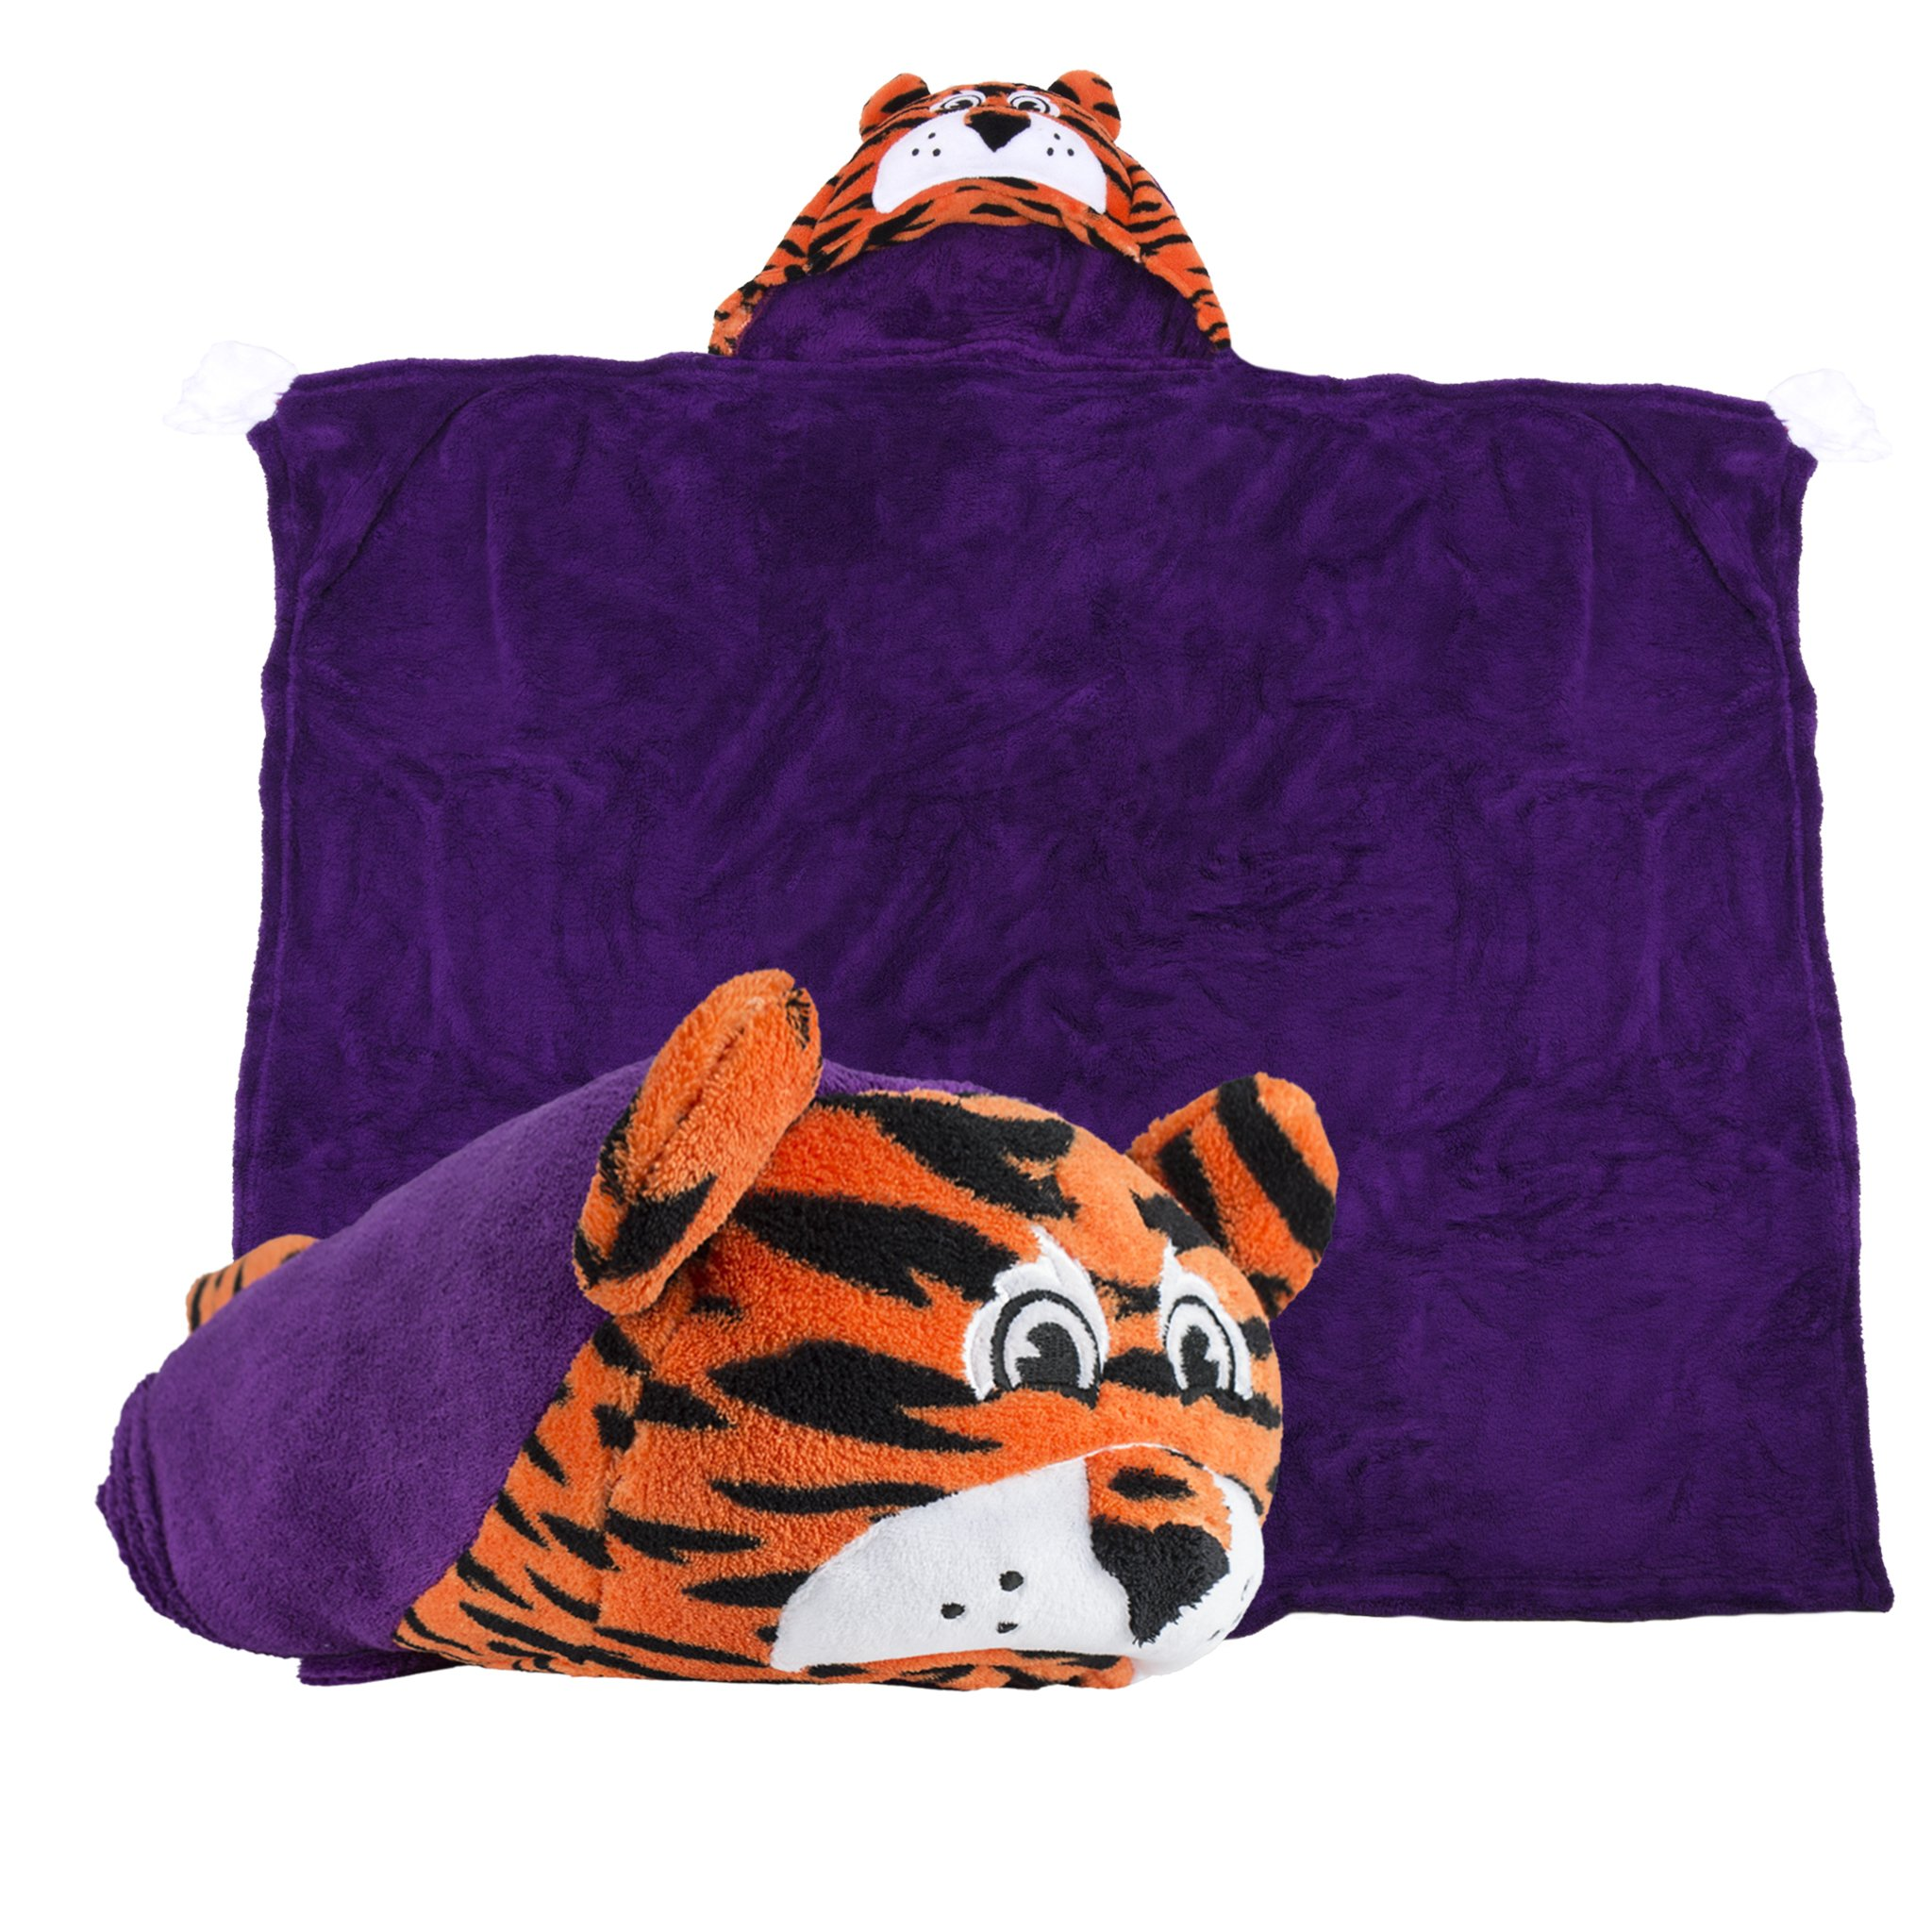 Comfy Critters Stuffed Animal Blanket – College Mascot, Clemson University 'Tiger' – Kids huggable pillow and blanket perfect for the big game, tailgating, pretend play, travel, and much more.